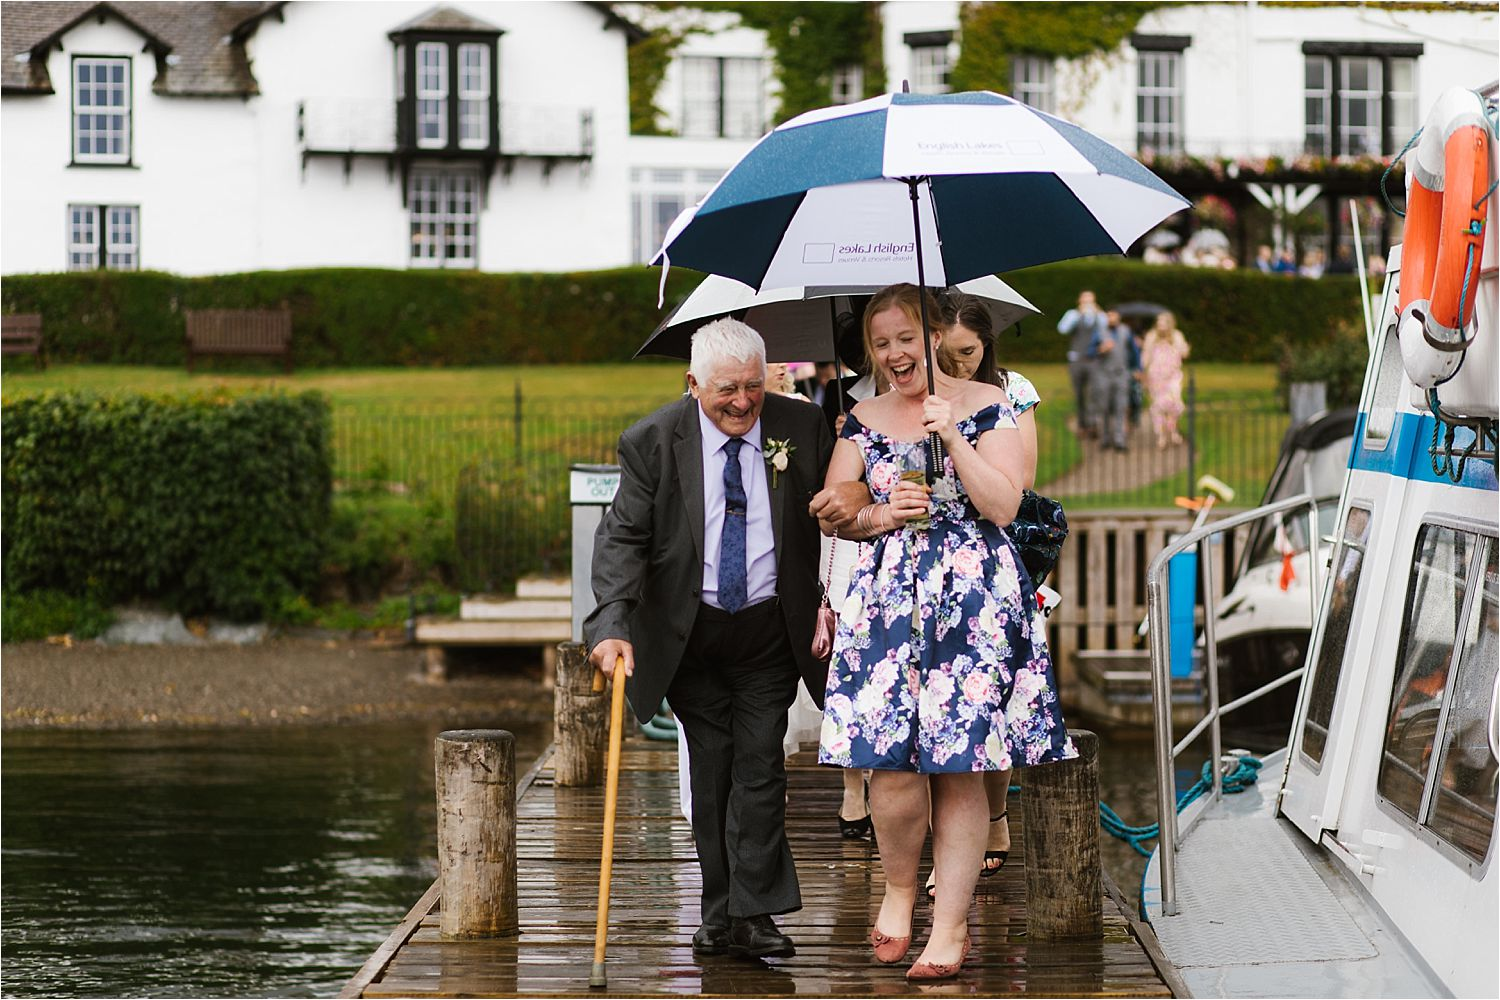 Guests with umbrellas wlaking down the jetty for a boat trip with Windermere Lake Cruises